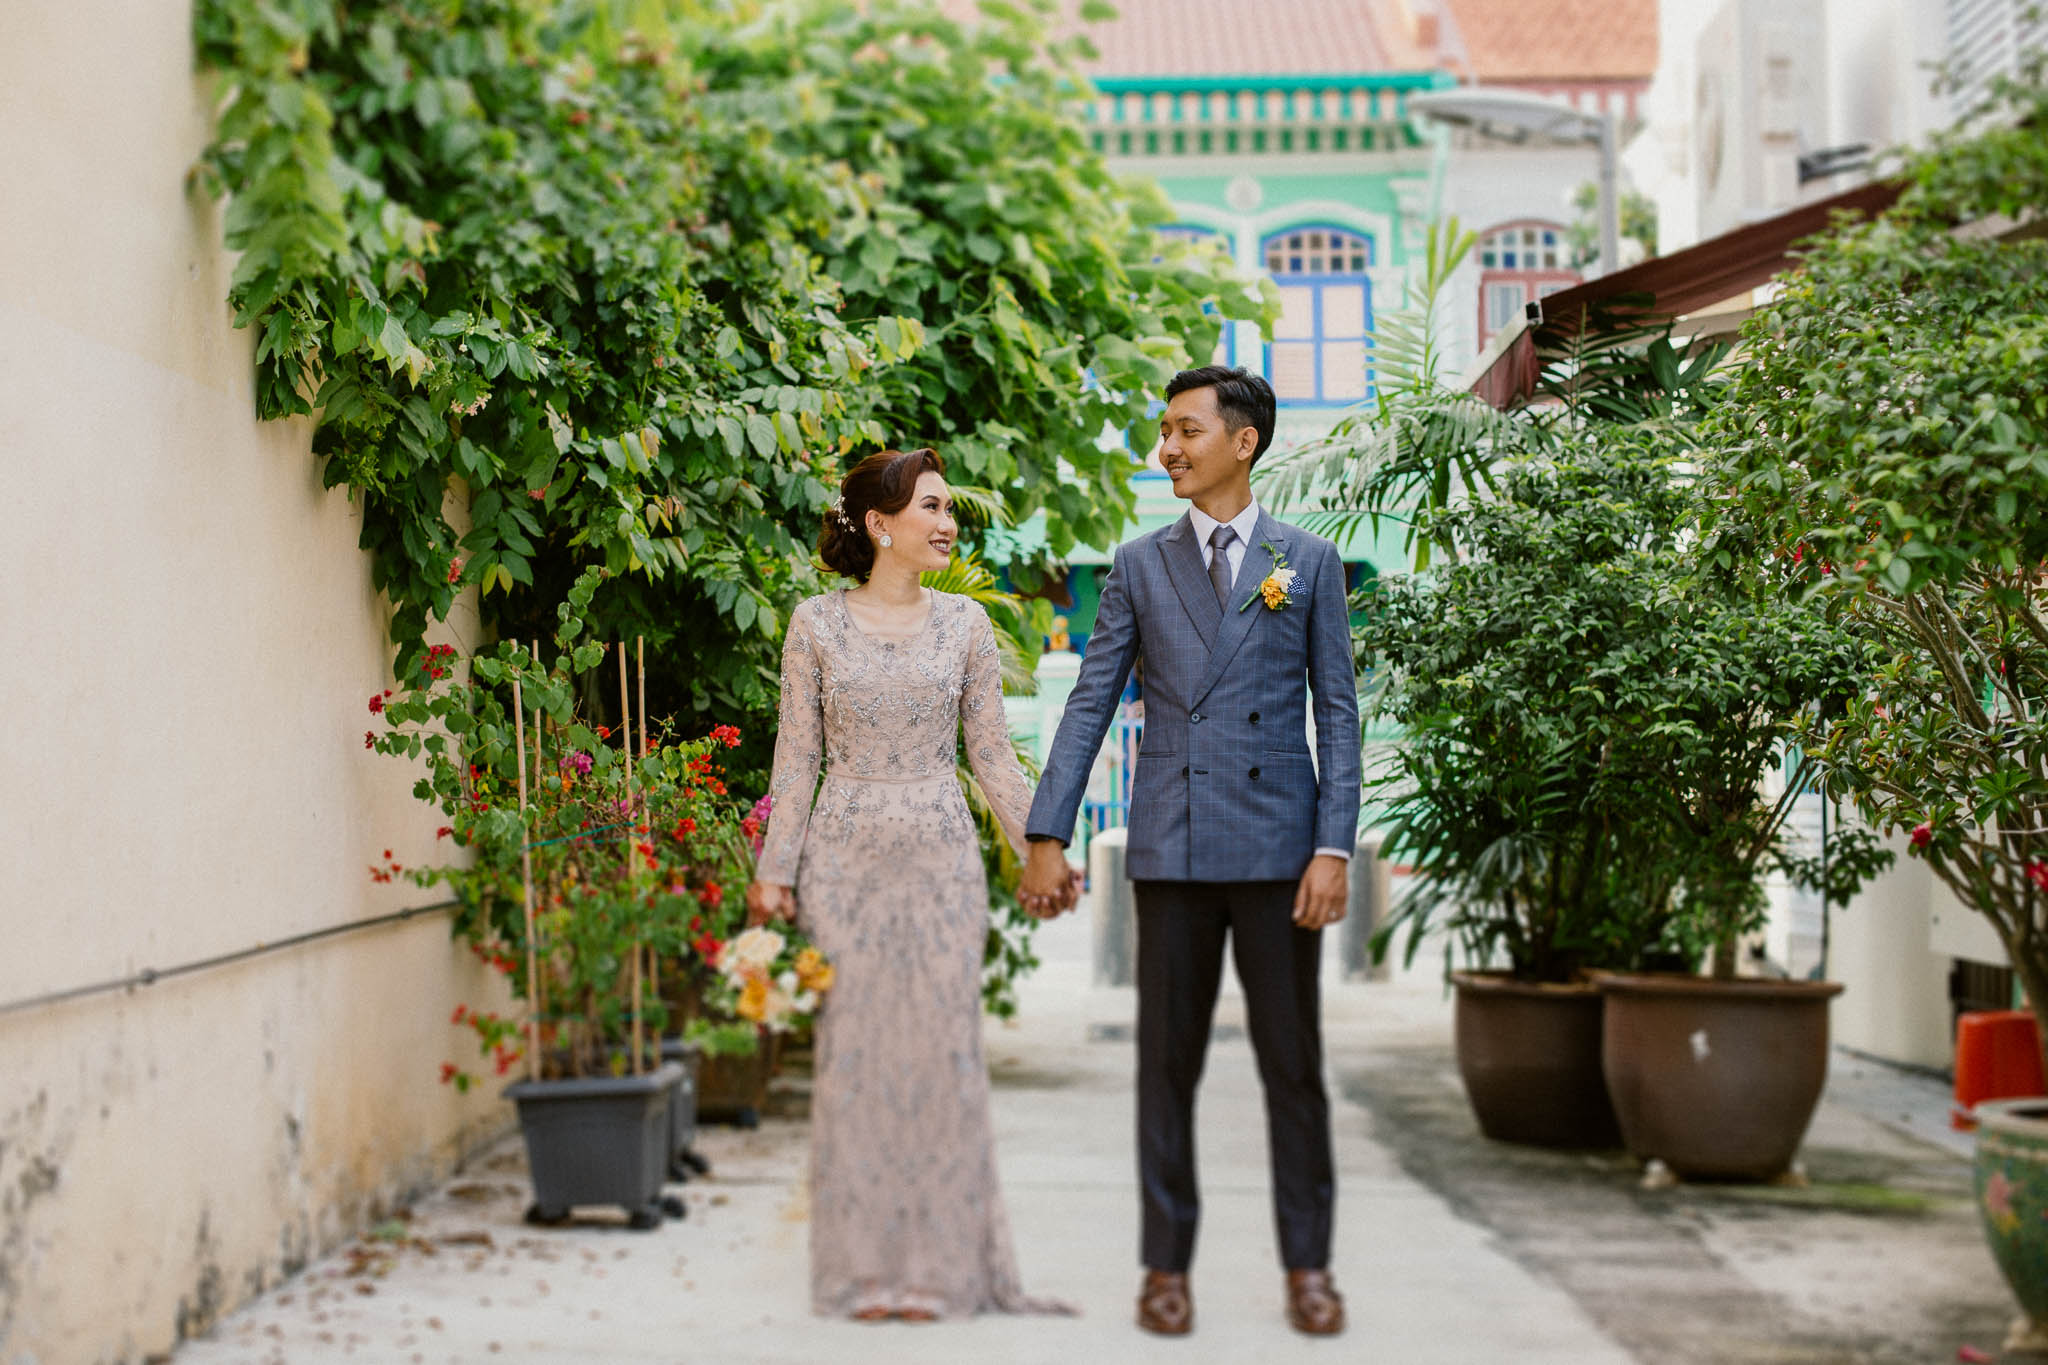 singapore-wedding-photographer-we-made-these-2016-selects-128.jpg